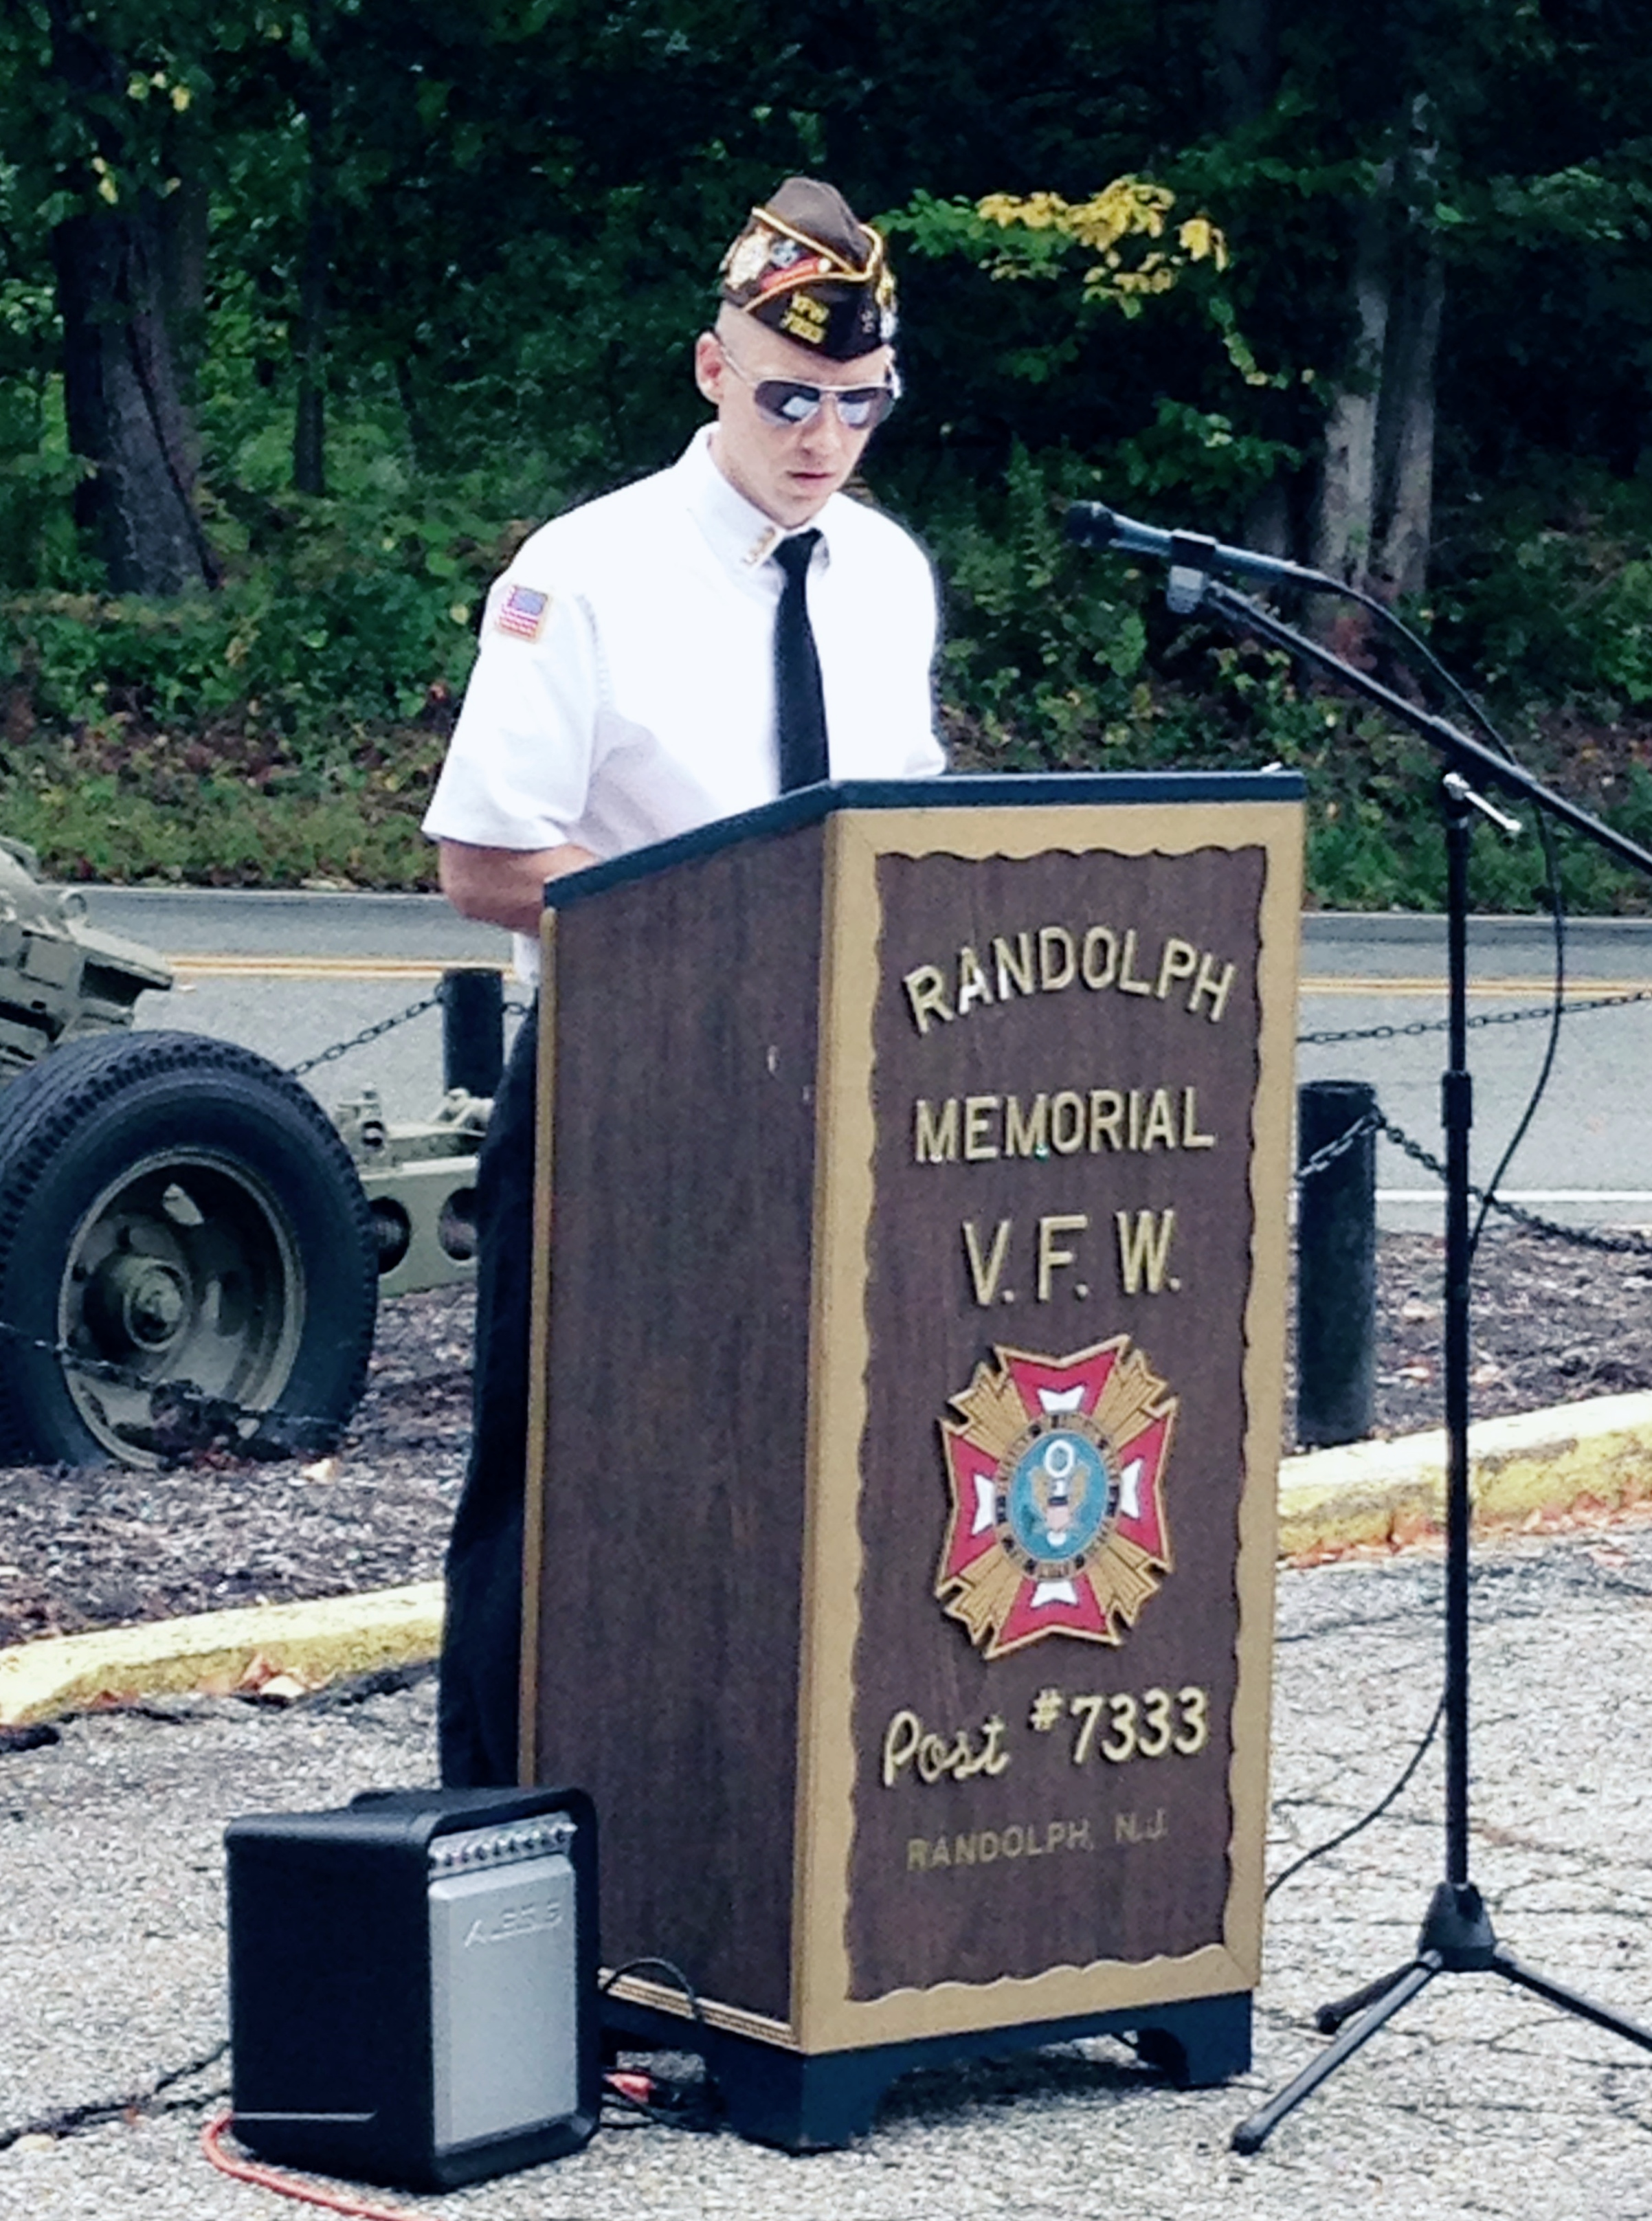 Patriot's Day 2015 - Commander Scott commemorating the heroes and the fallen of September 11, 2001.